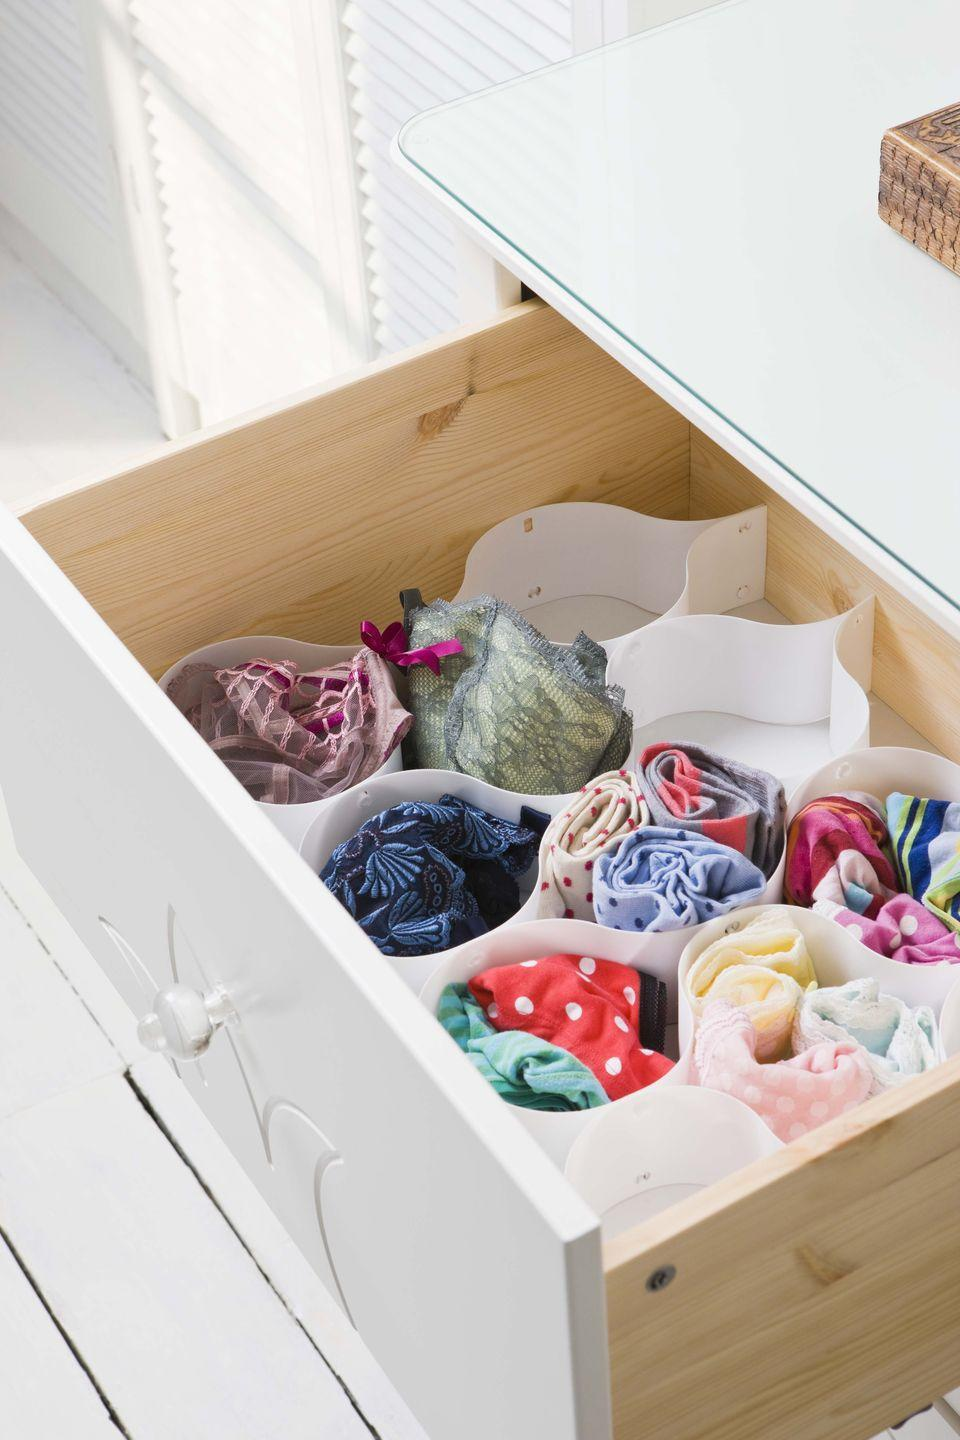 <p>Storing undies in cute compartments helps you instantly see every pair you own. </p>